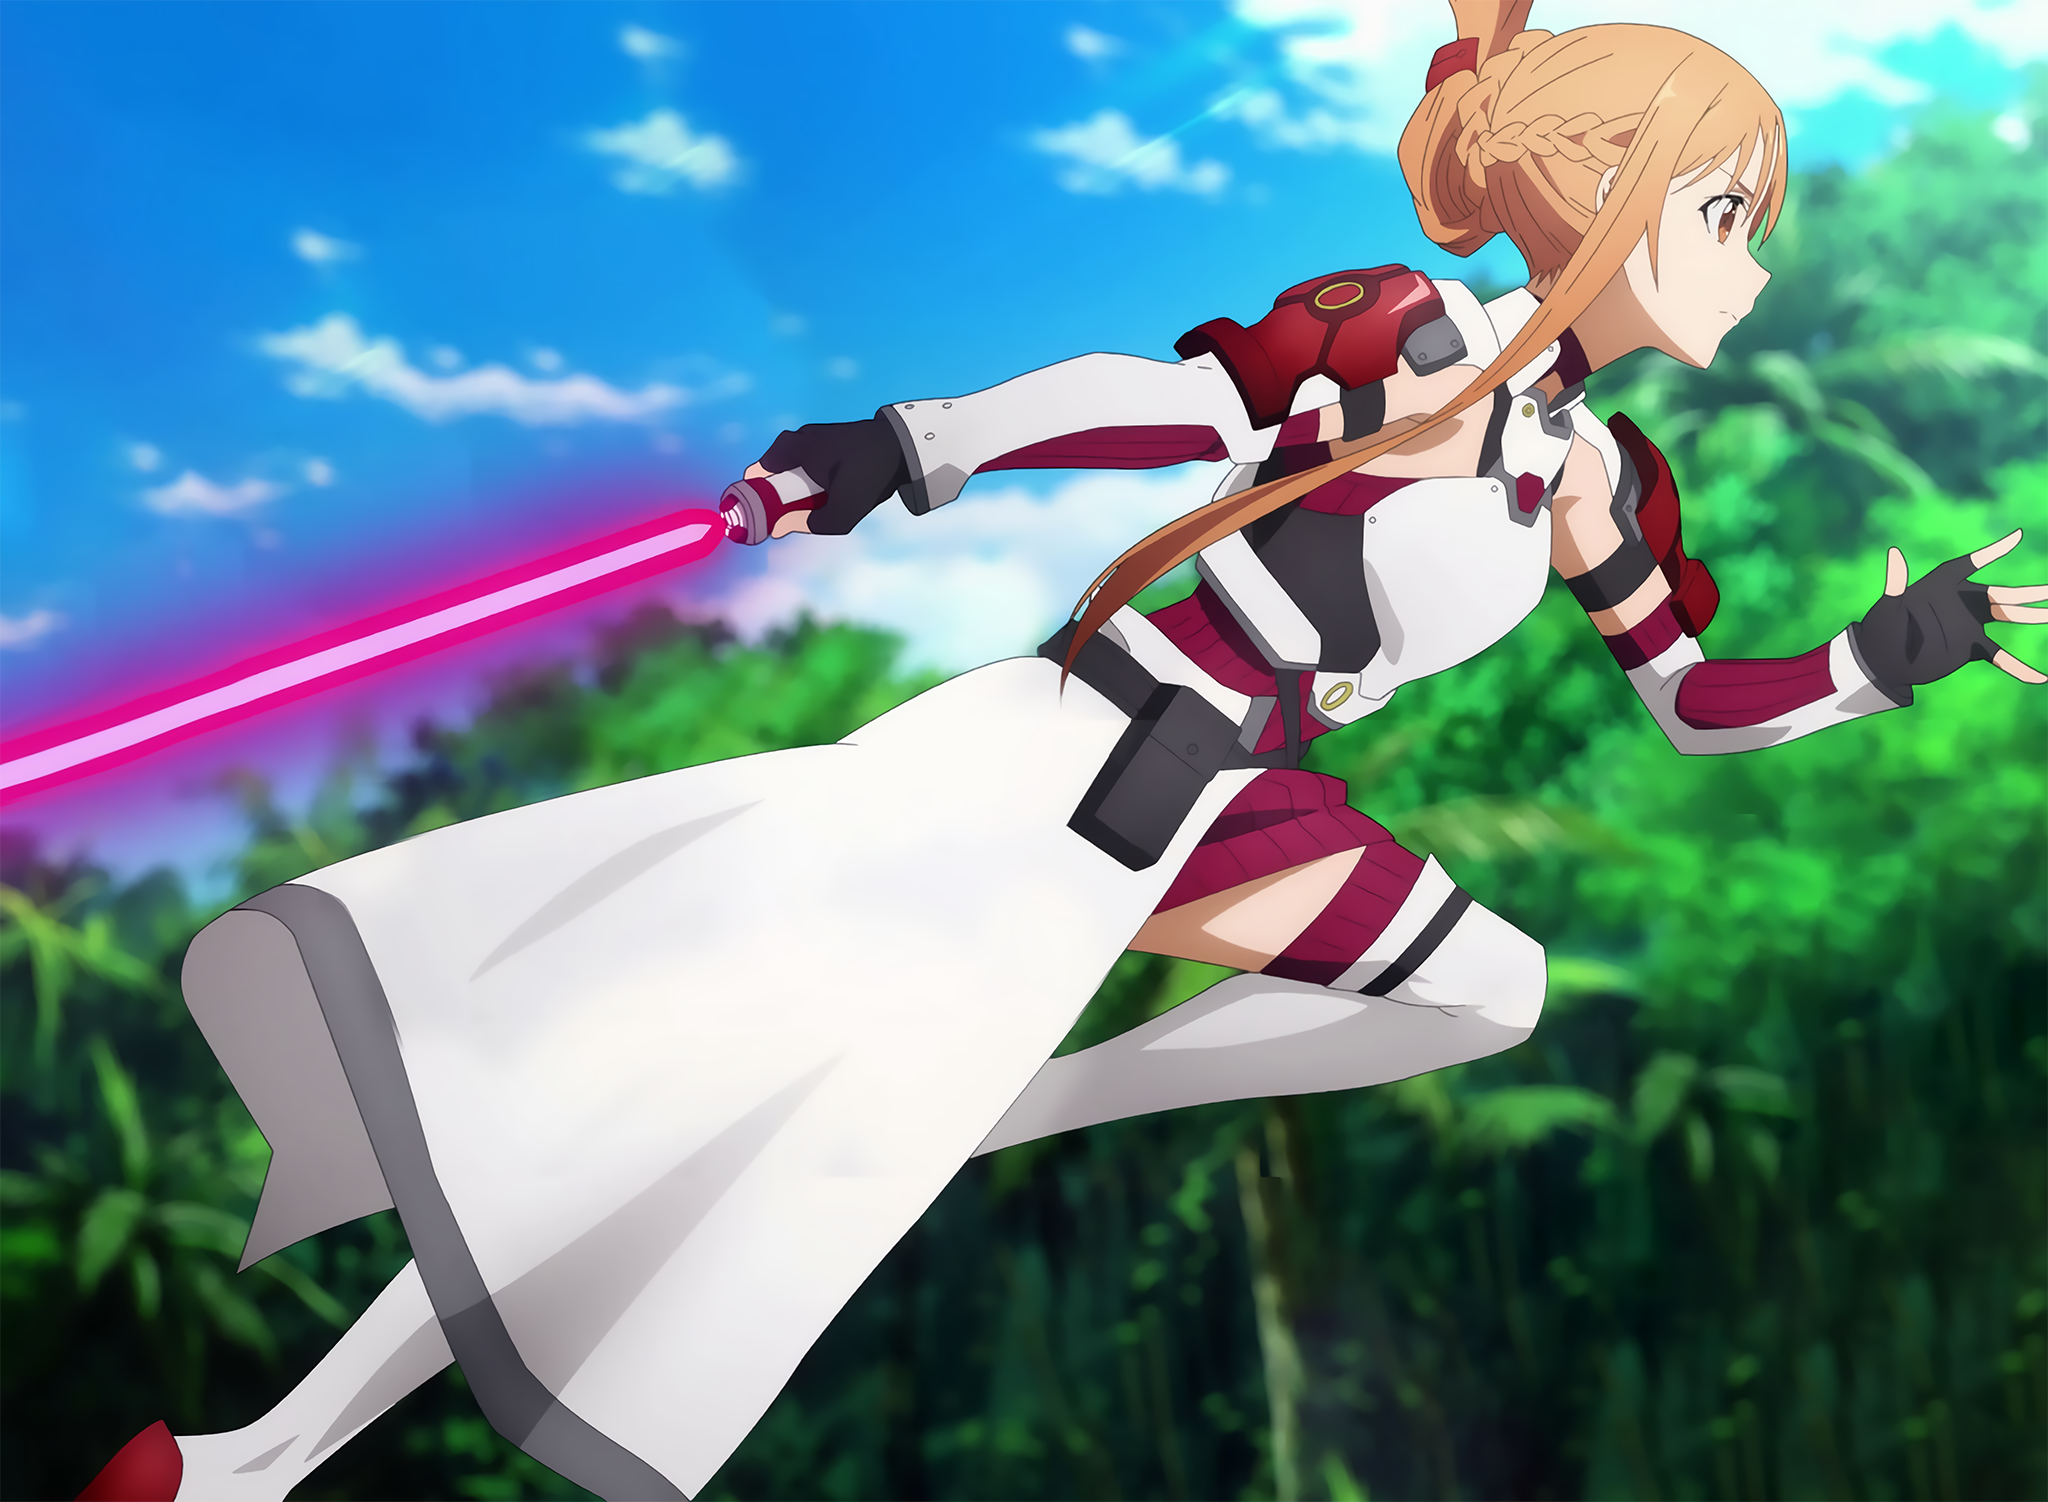 Ggo Asuna V2 Sao Alicization Music Indieartist Chicago Sword Art Online Season Sword Art Online Wallpaper Sword Art